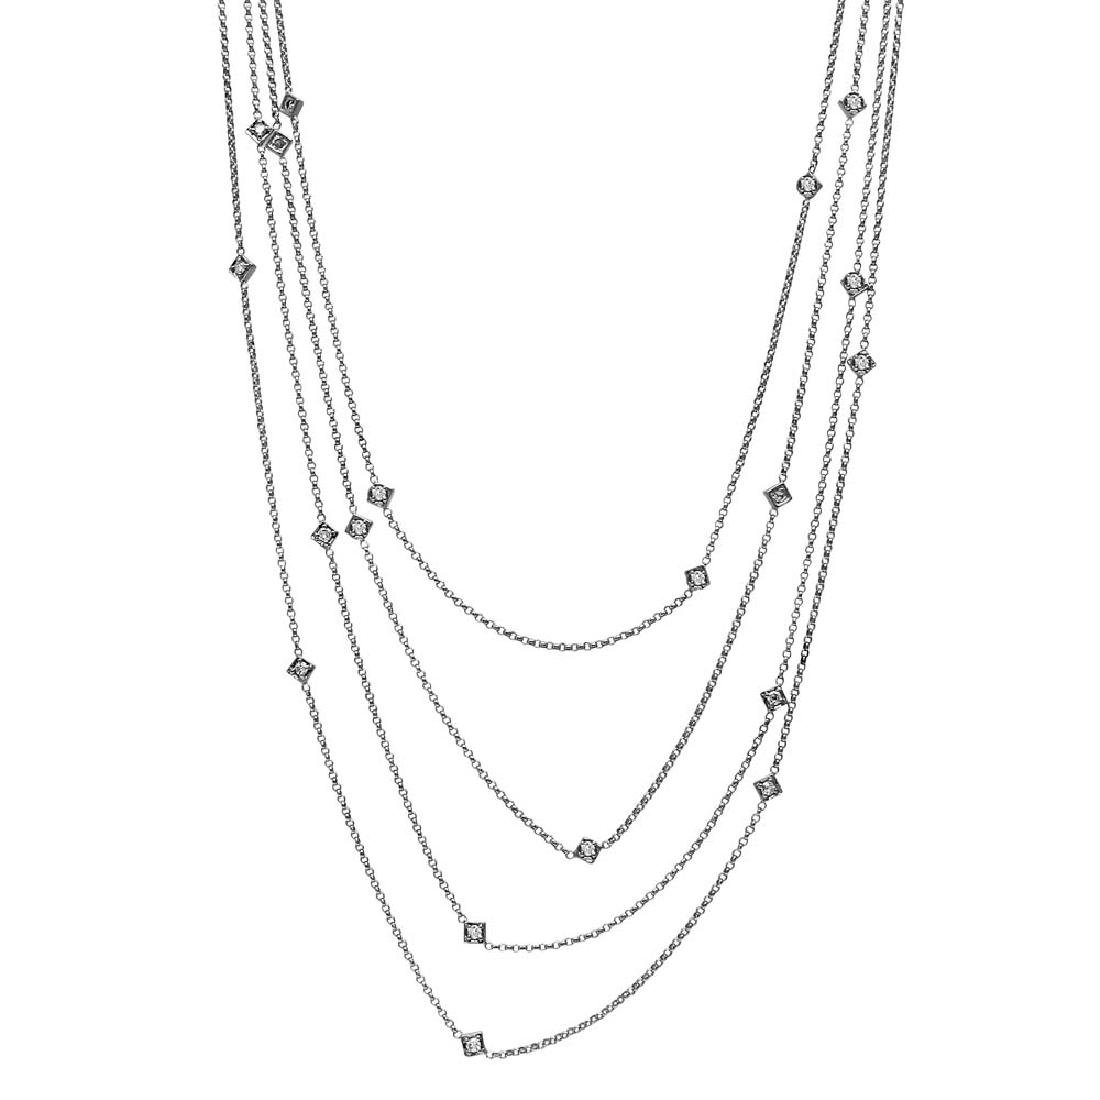 0.96 CTW Diamond Chain Necklace 14K White Gold